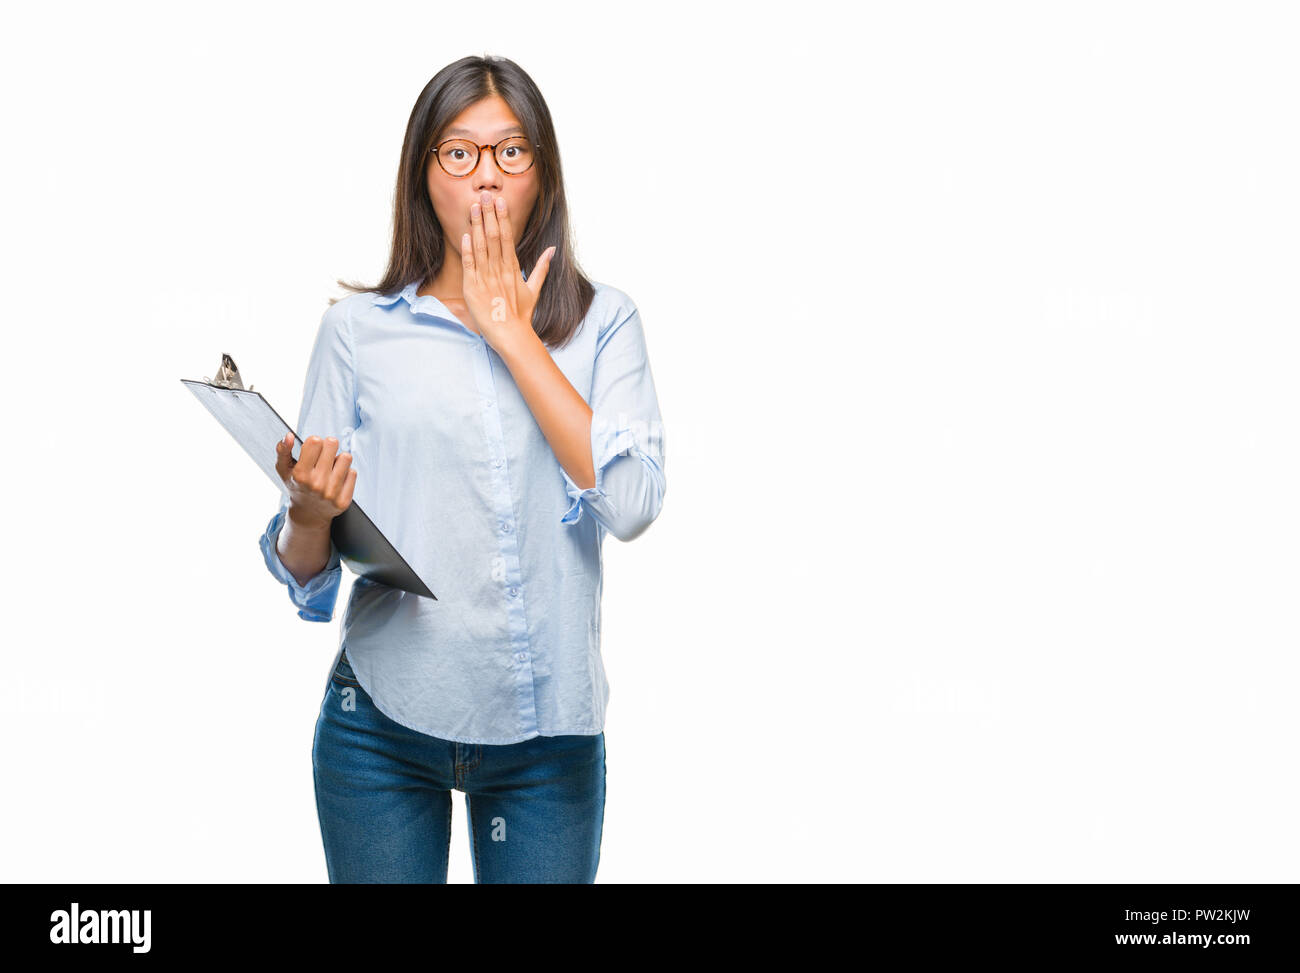 young asian business woman over isolated background holding